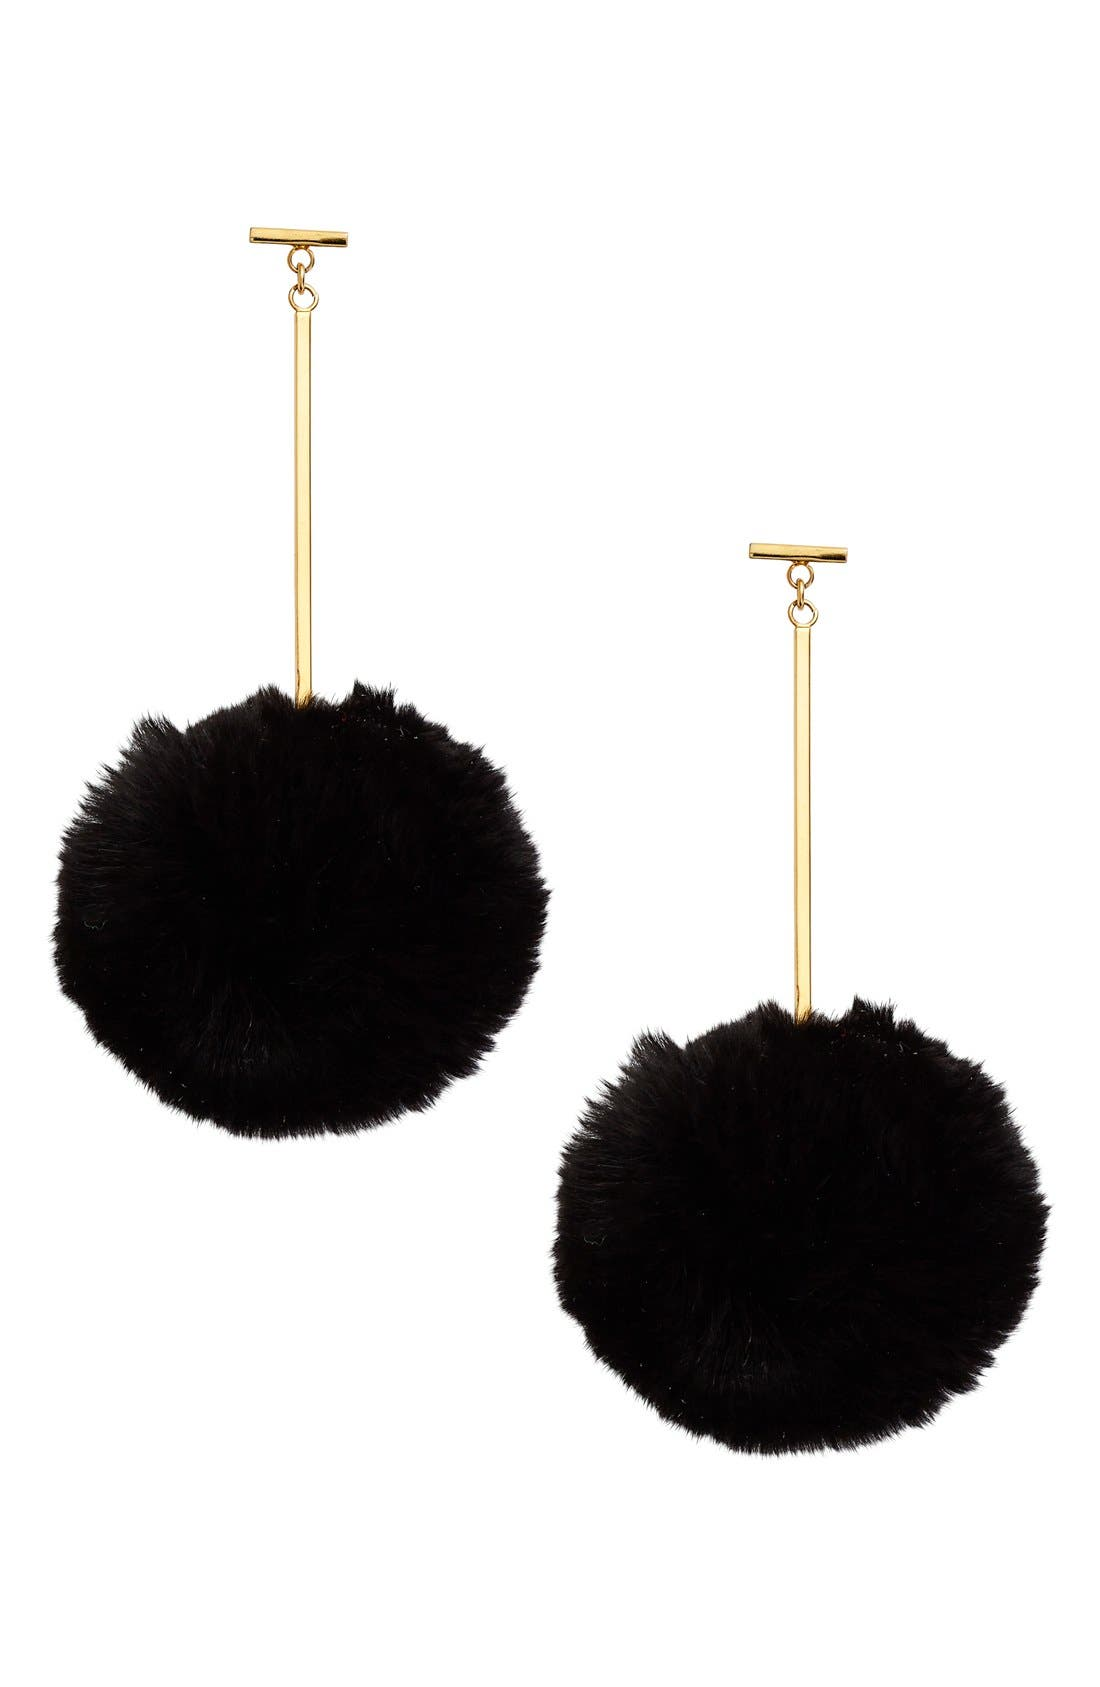 TULESTE 'Pom Pom' Genuine Rabbit Fur Drop Earrings, Main, color, 001